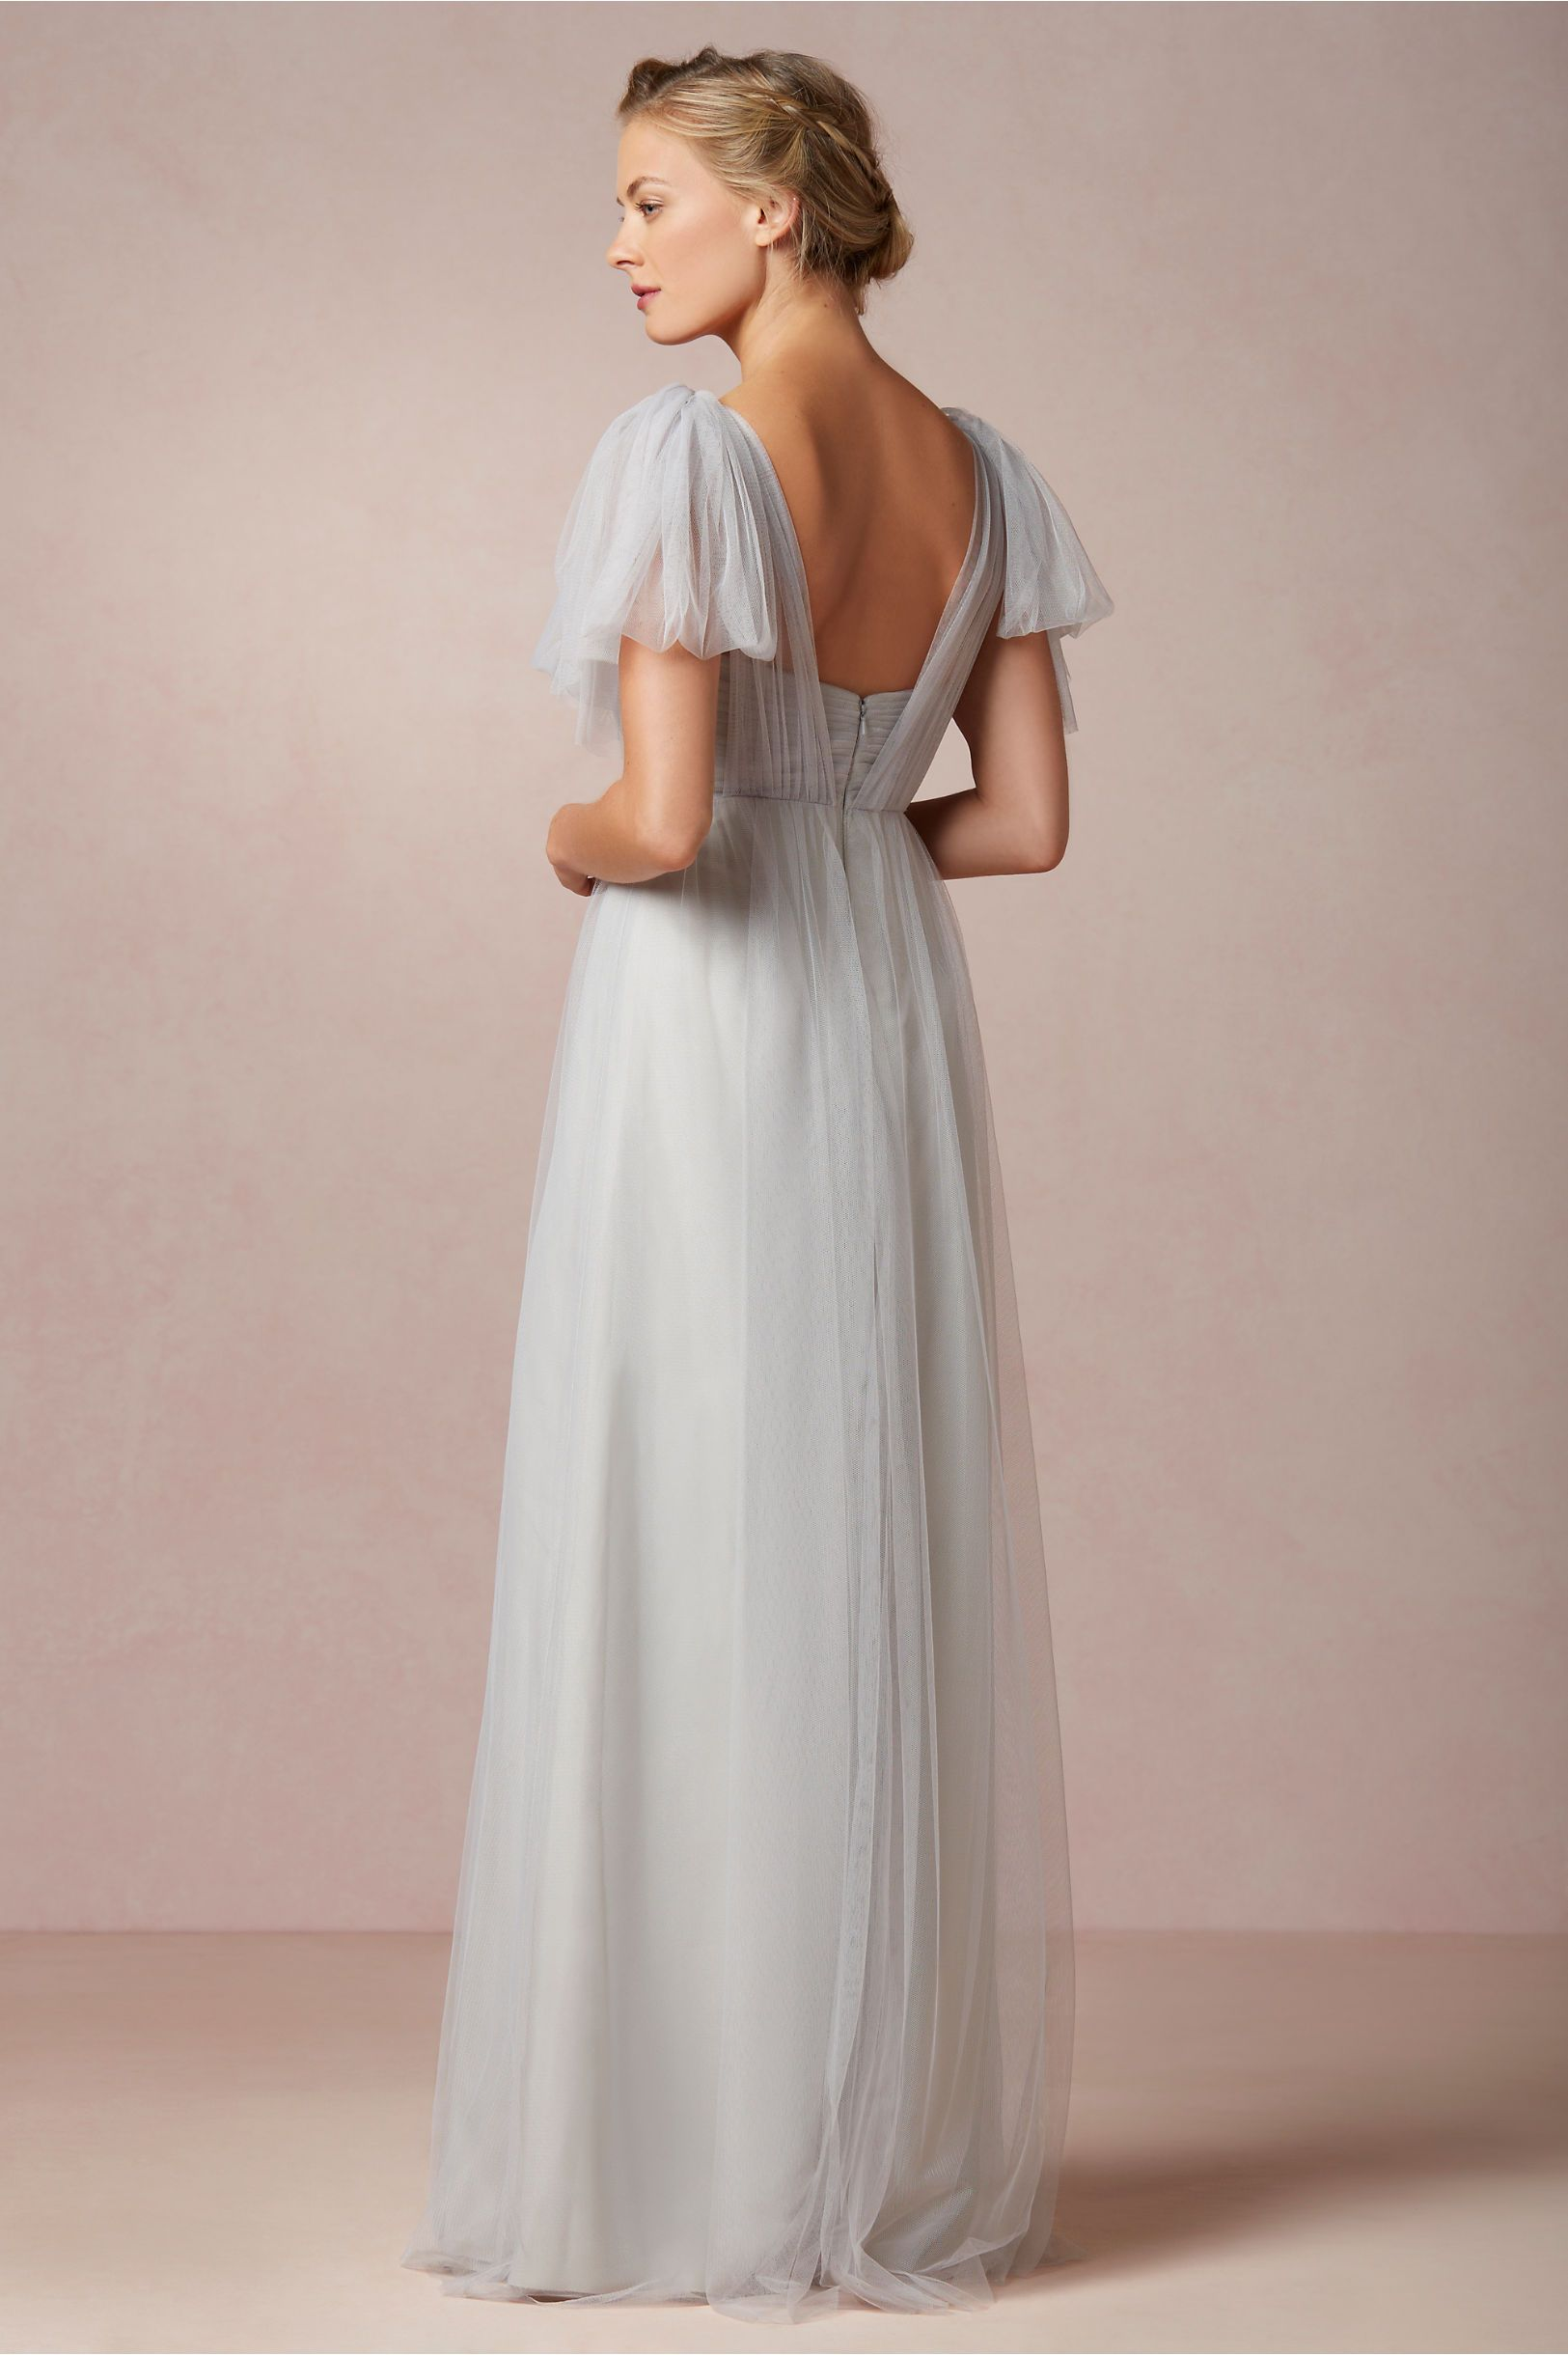 If we have a vows renewal ceremony i want to wear something like if we have a vows renewal ceremony i want to wear something like this bridesmaid ombrellifo Images